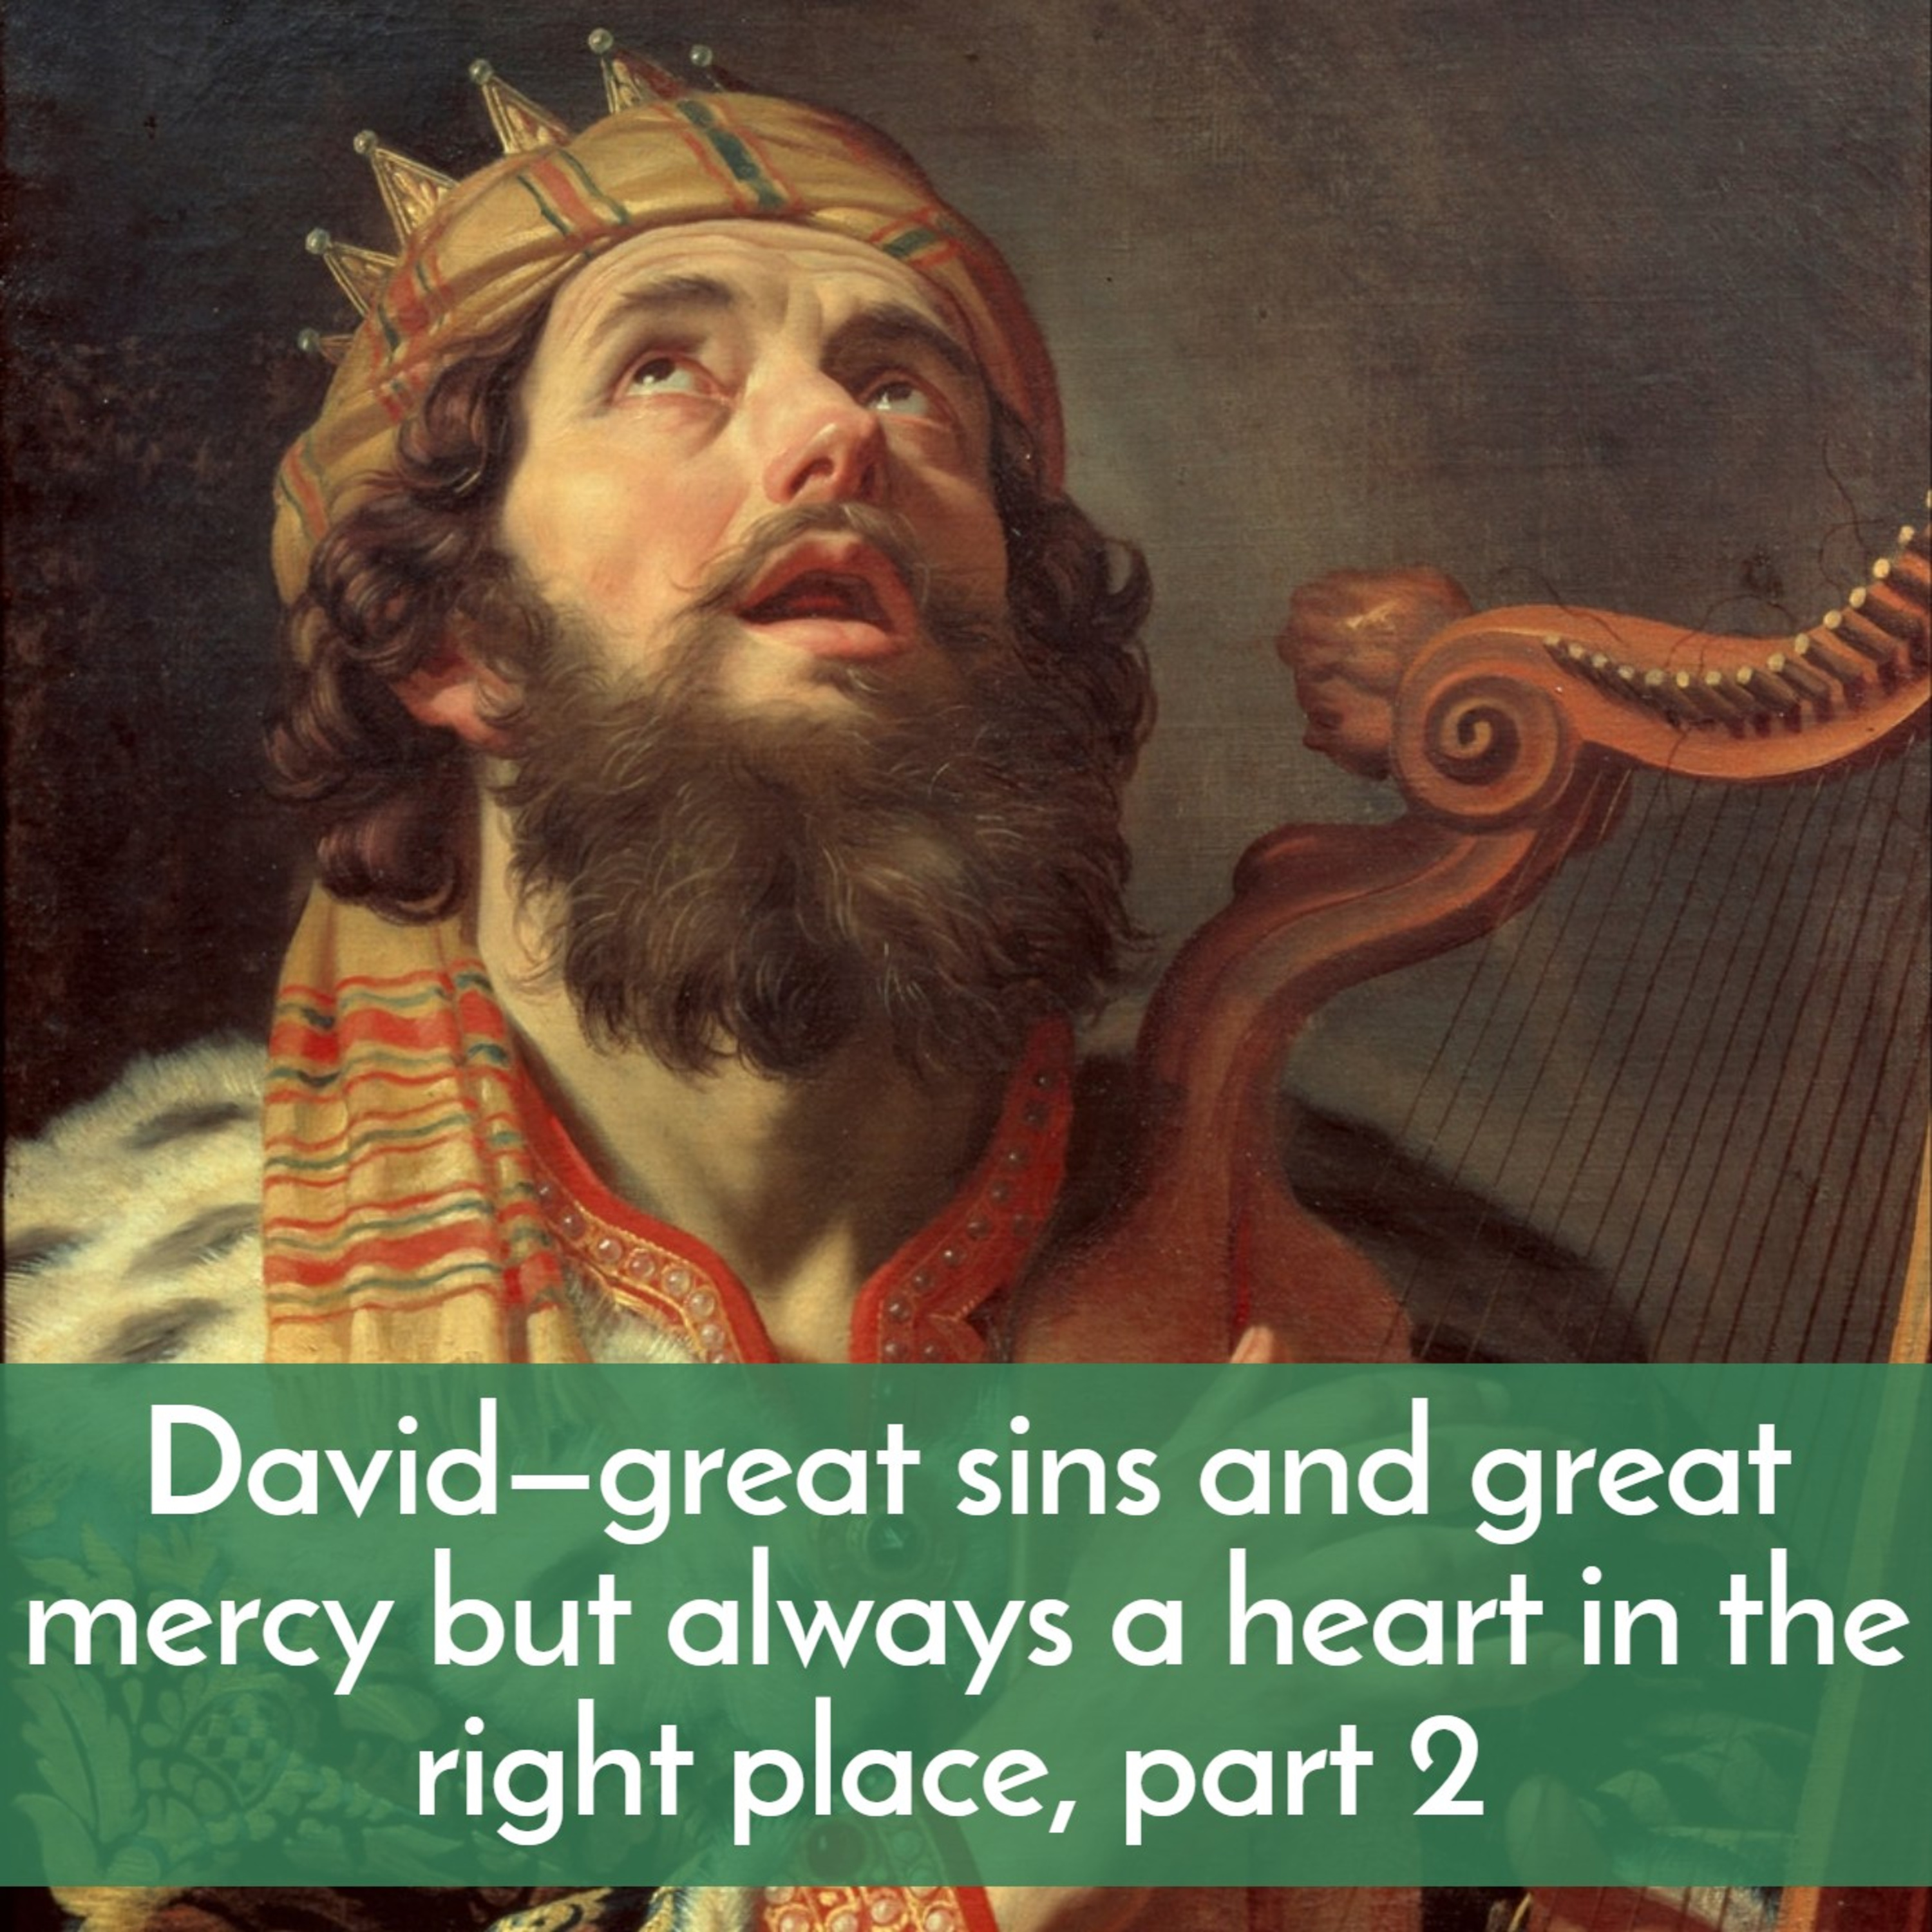 David—great sins and great mercy but always a heart in the right place, part 2